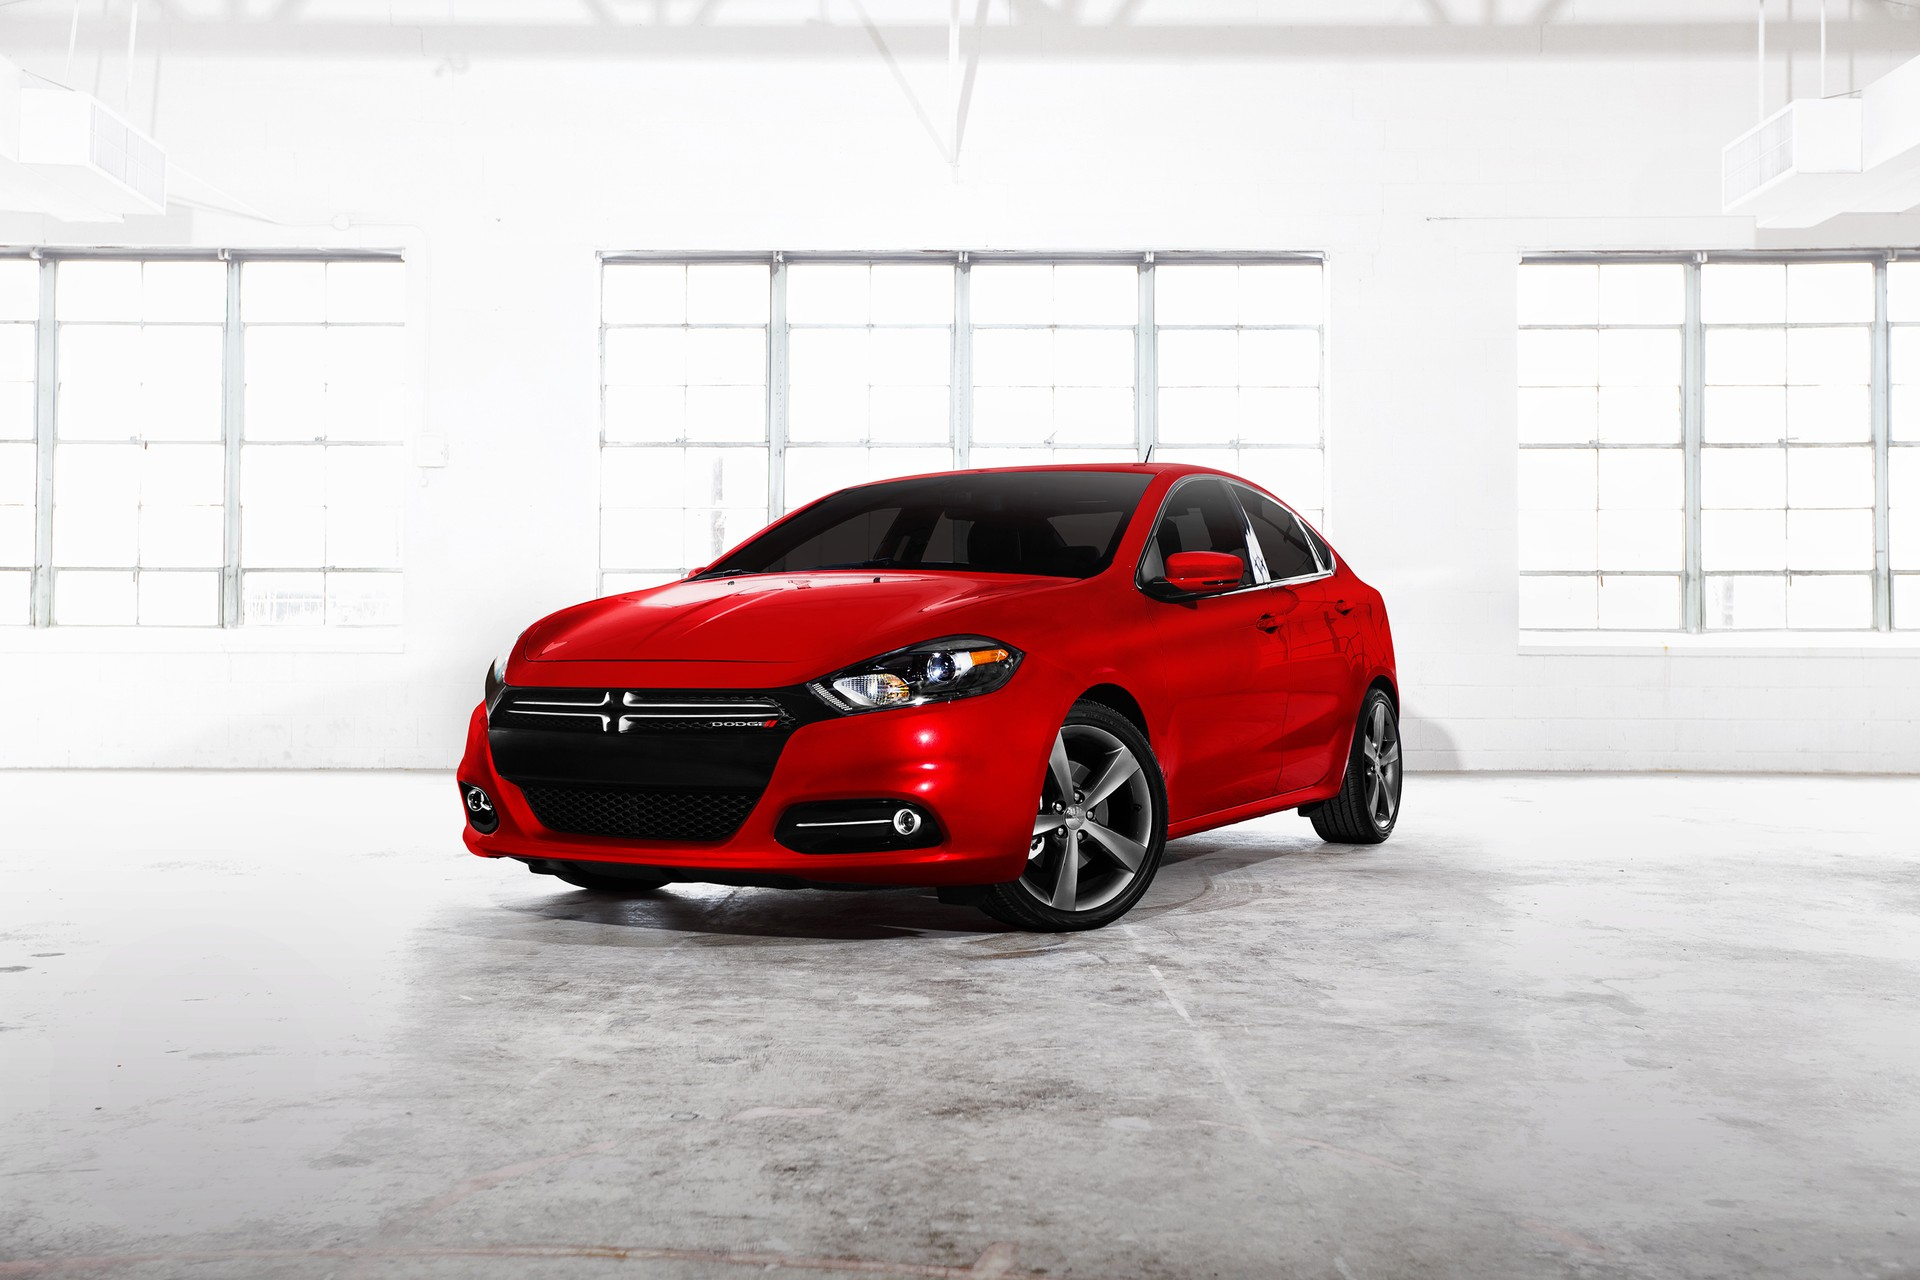 2013 Dodge Dart GT Sharper And Racier But How Much Faster